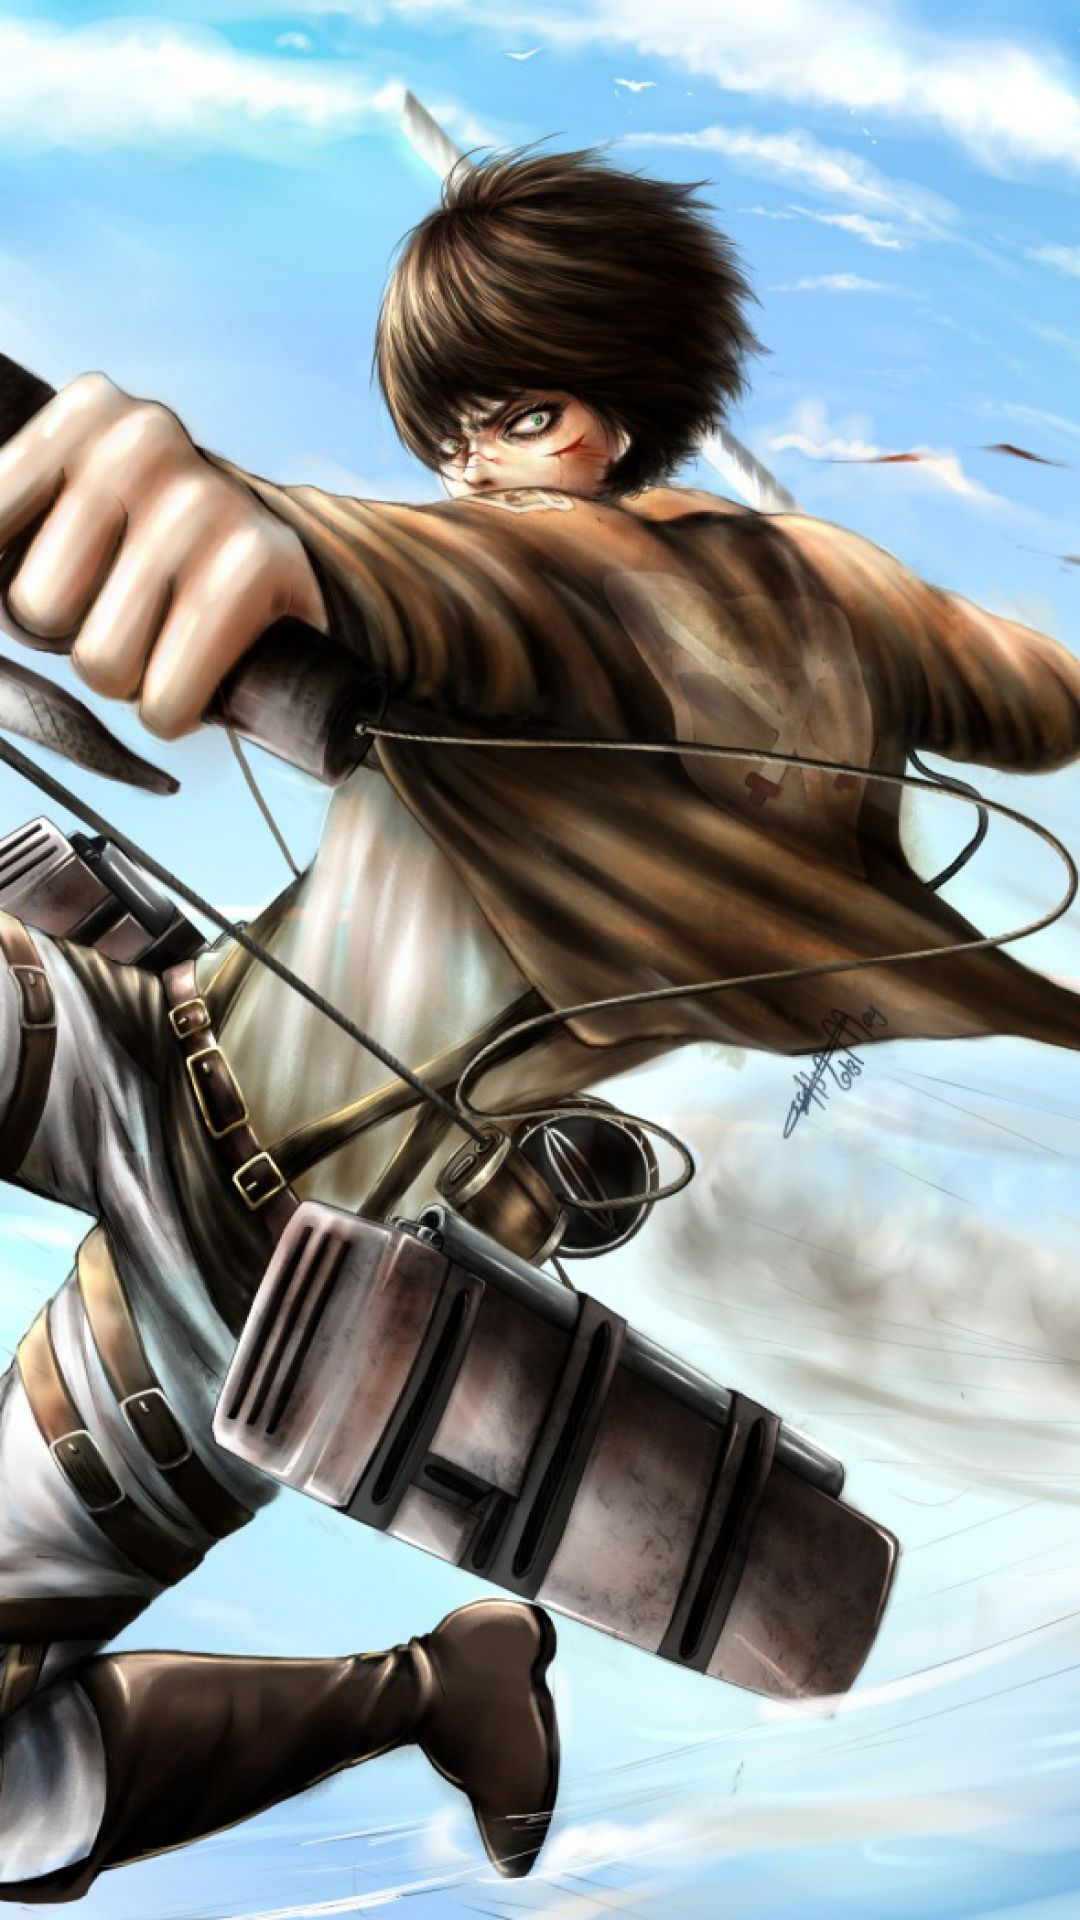 Yuriko nakao/getty images attack on titan is a popular anime series that has also spawned movies and video games. 34 Attack on Titan iPhone Wallpapers - WallpaperBoat